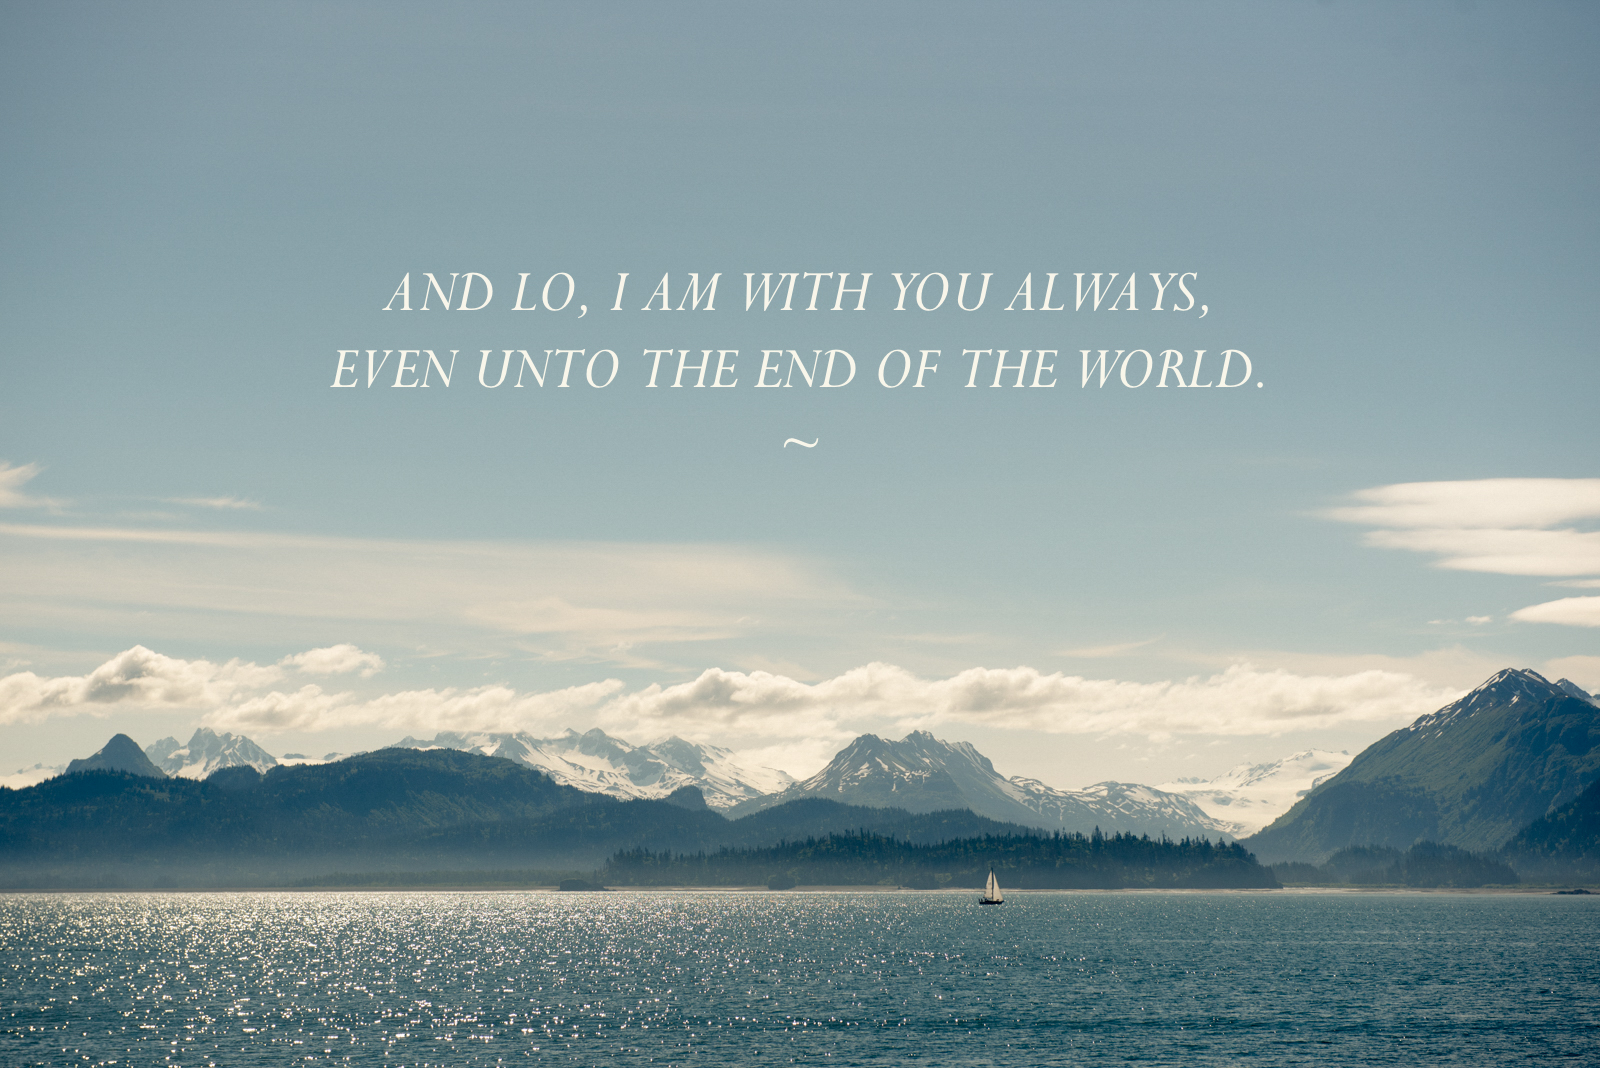 Therefore go and make disciples of all nations, baptizing them in the name of the Father and of the Son and of the Holy Spirit, and teaching them to obey everything I have commanded you. And lo, I am with you always, even unto the end of the world. Matthew 28:20